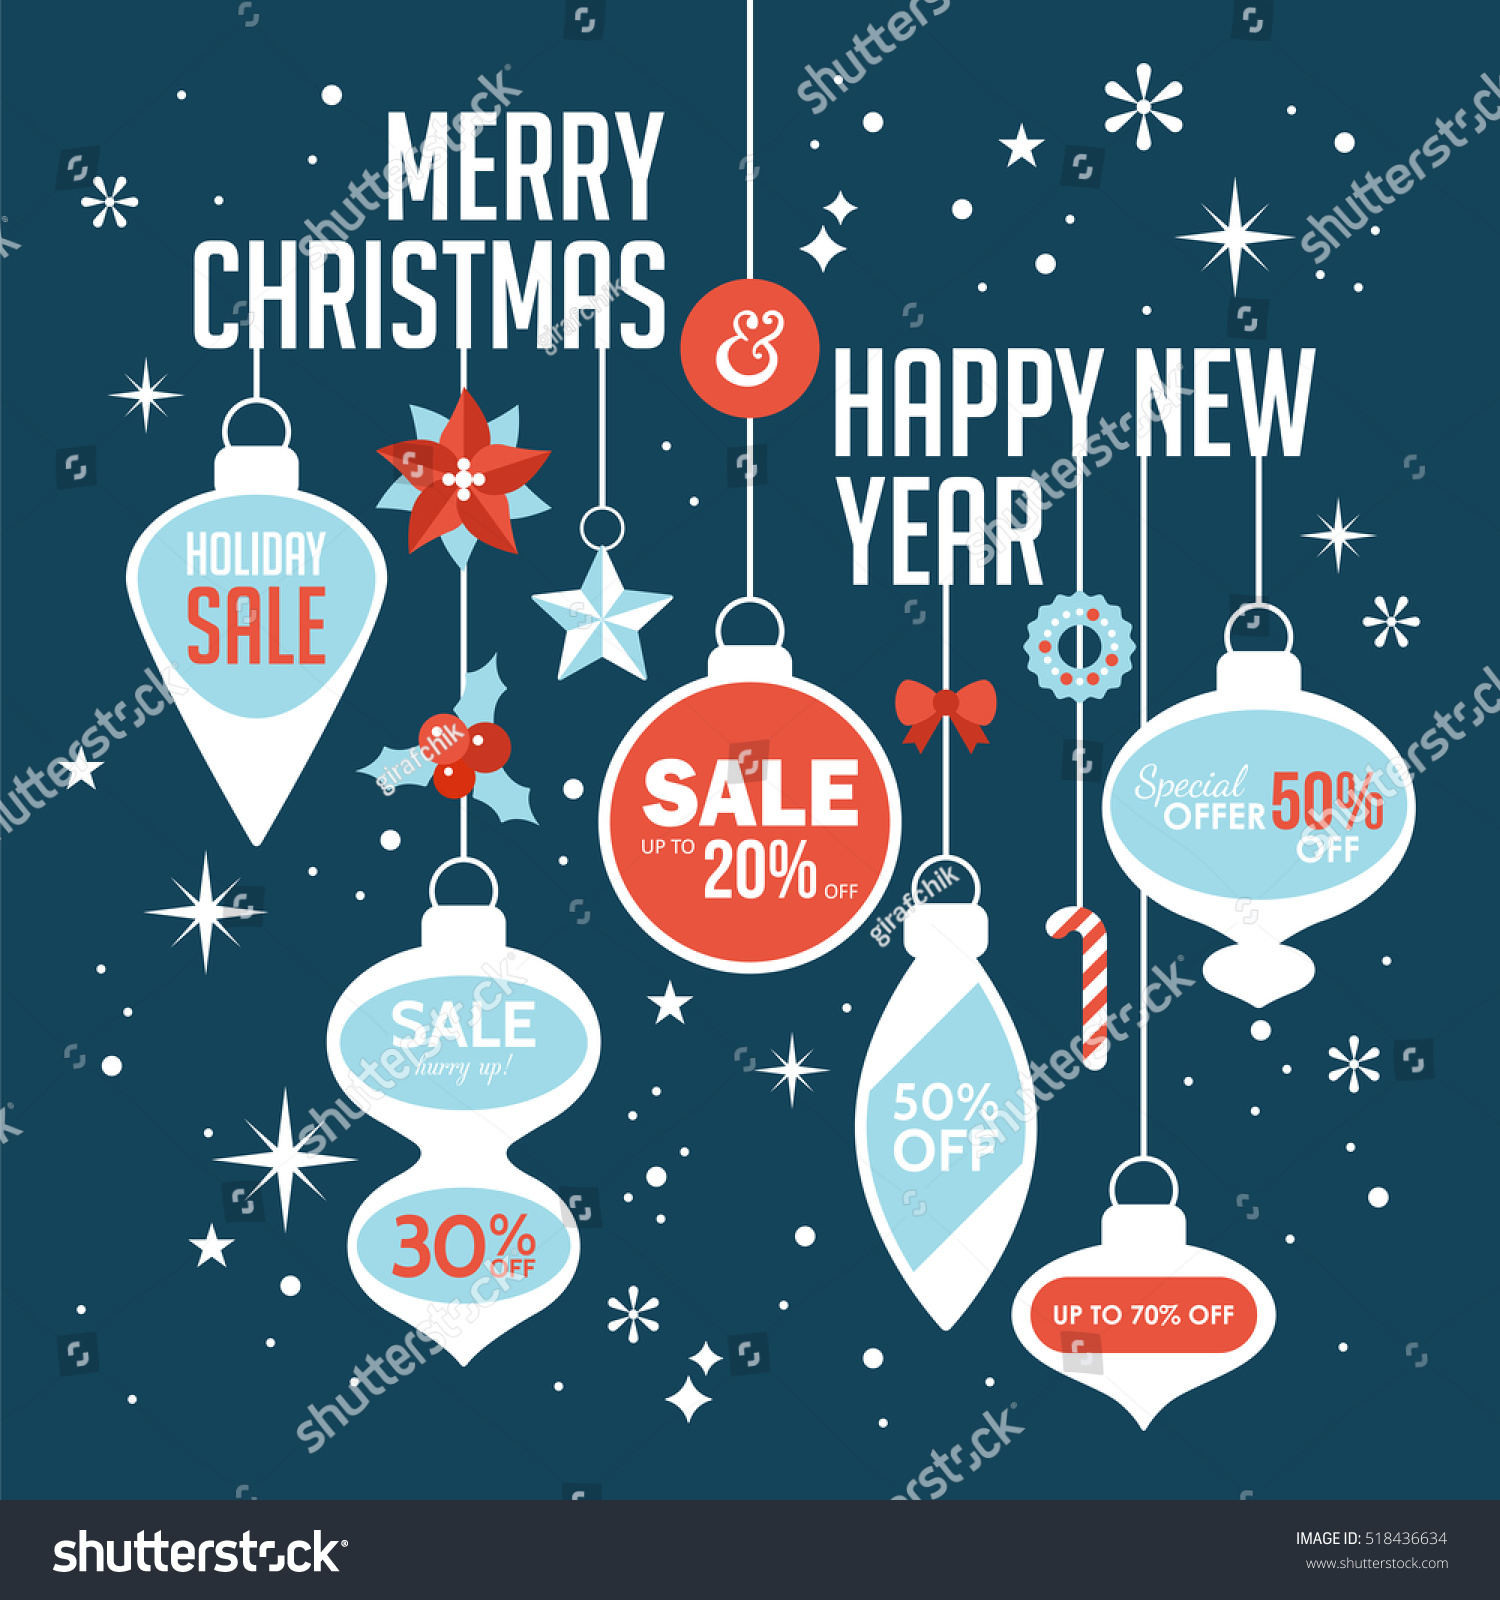 Christmas Sale Banner Design Template Vector Stock Vector